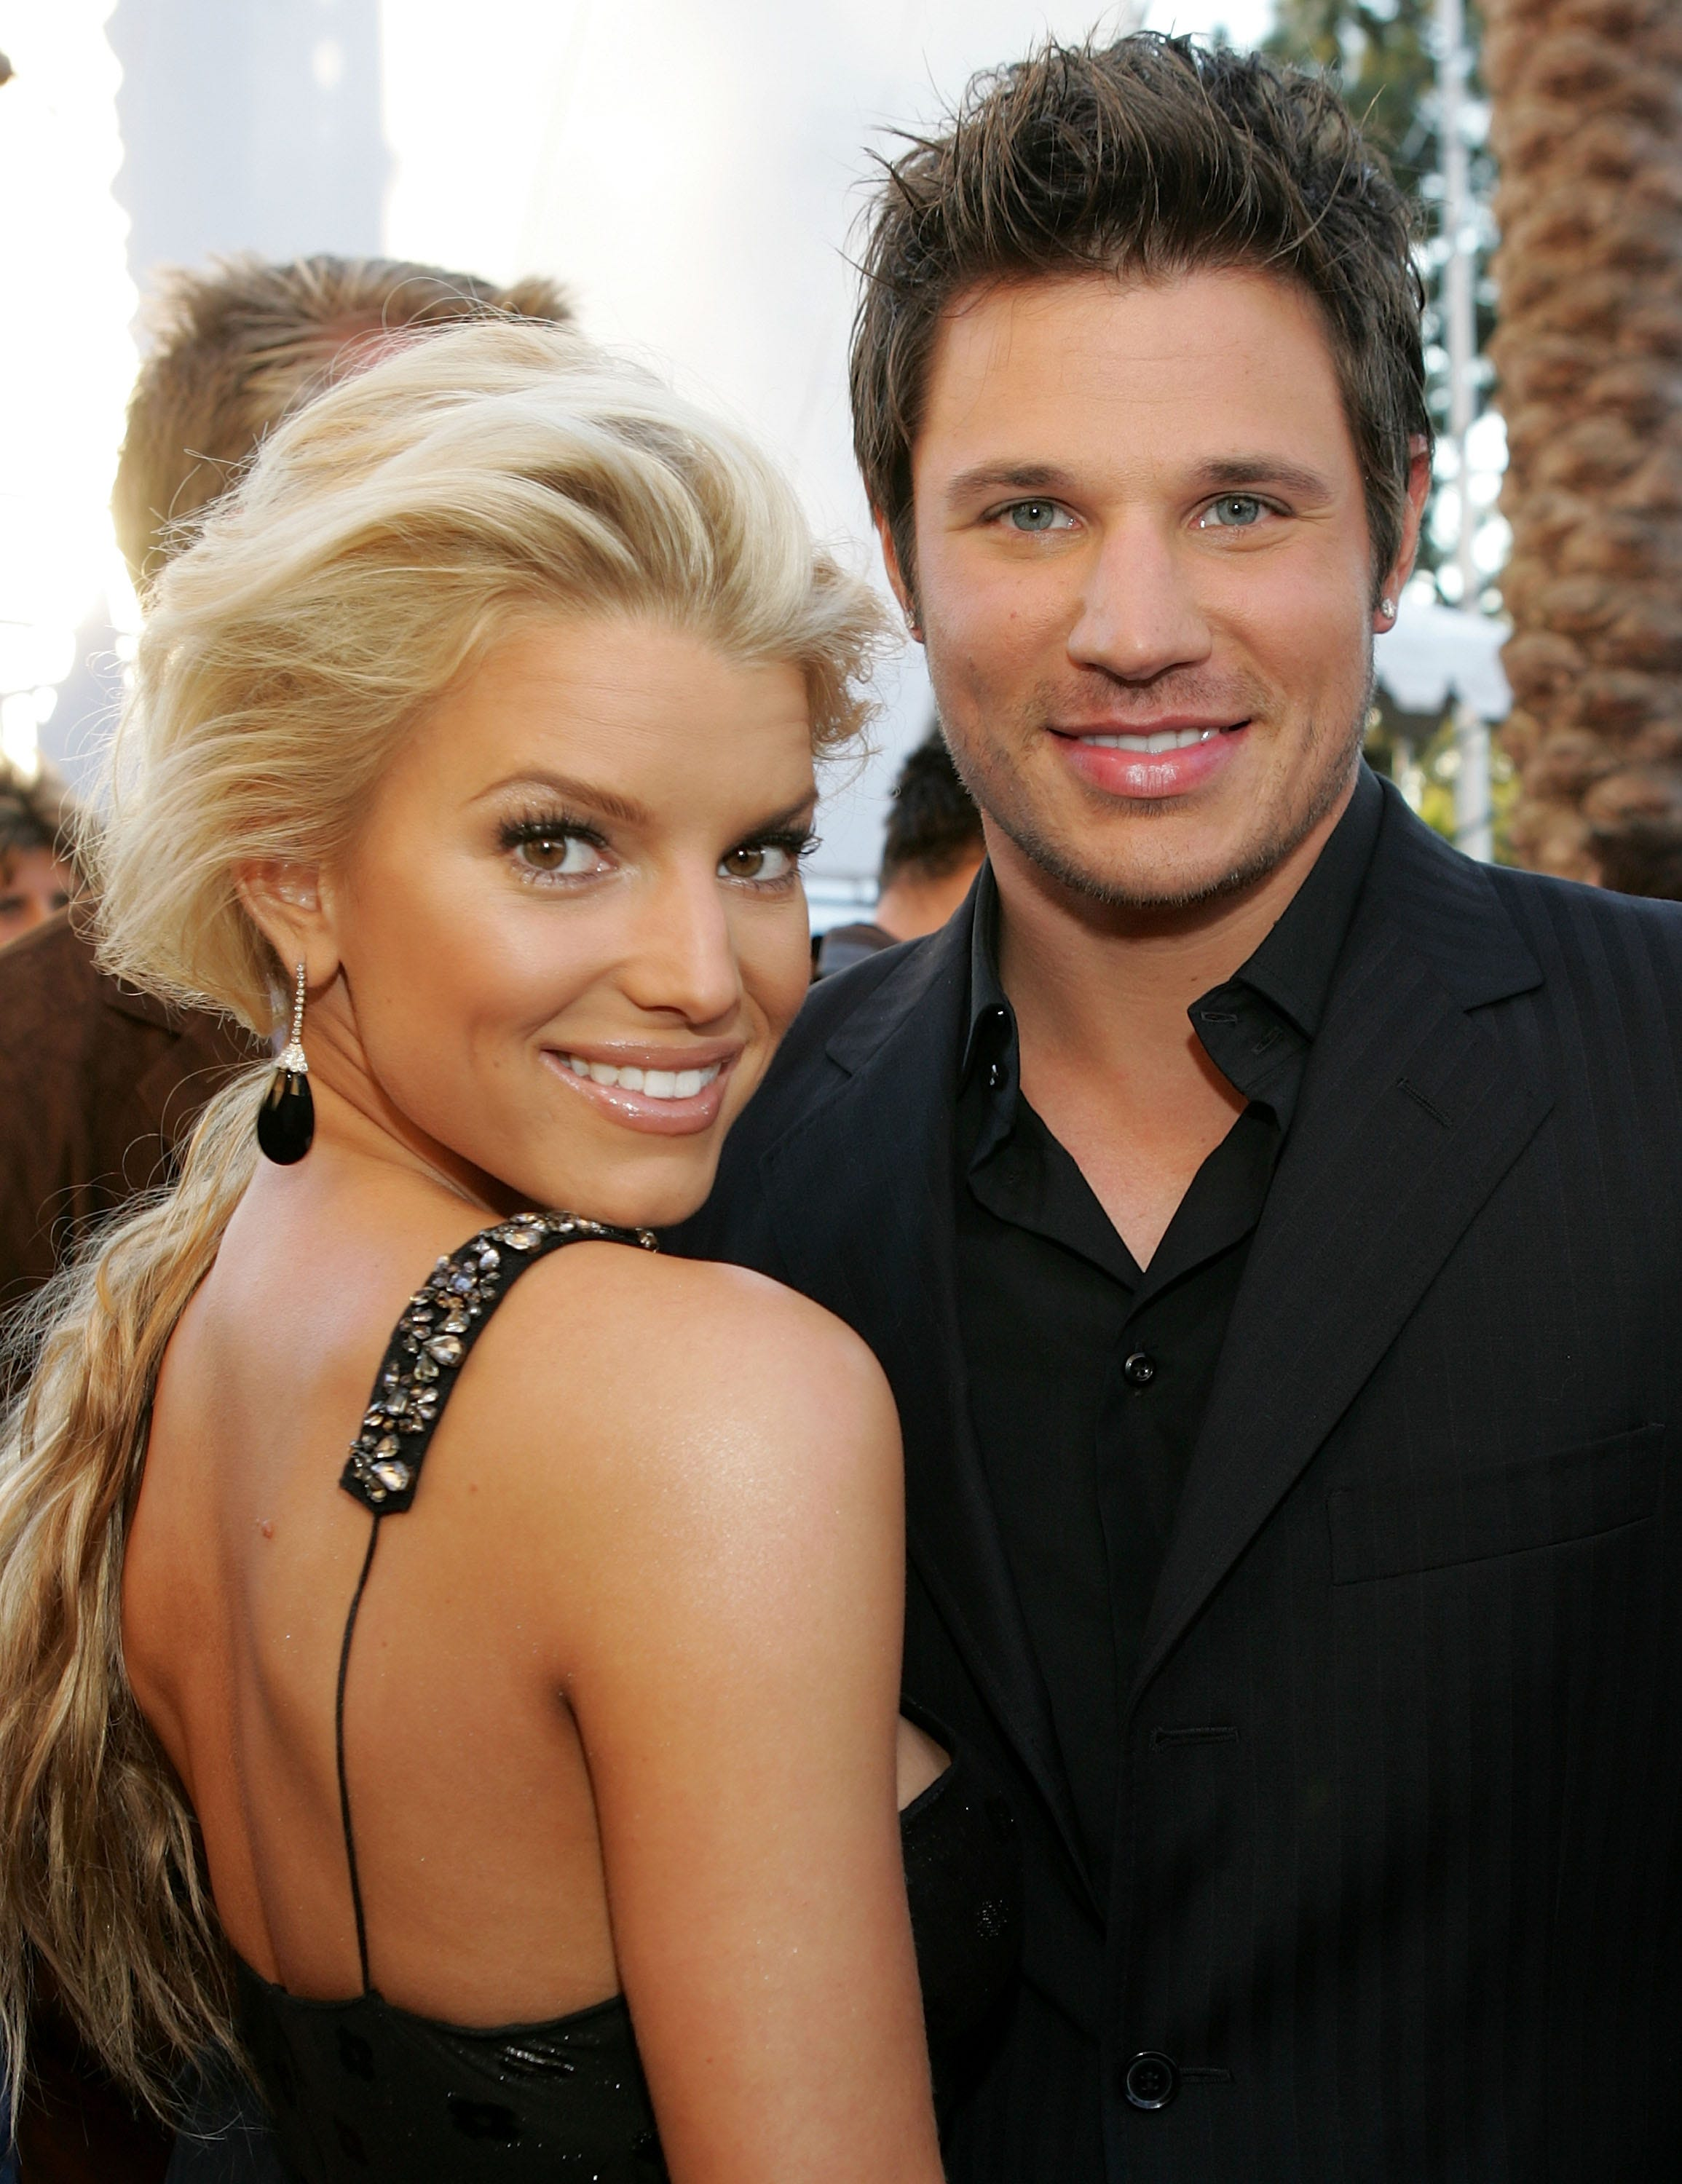 Jessica Simpson reveals why her marriage to Nick Lachey ended, details John Mayer romance